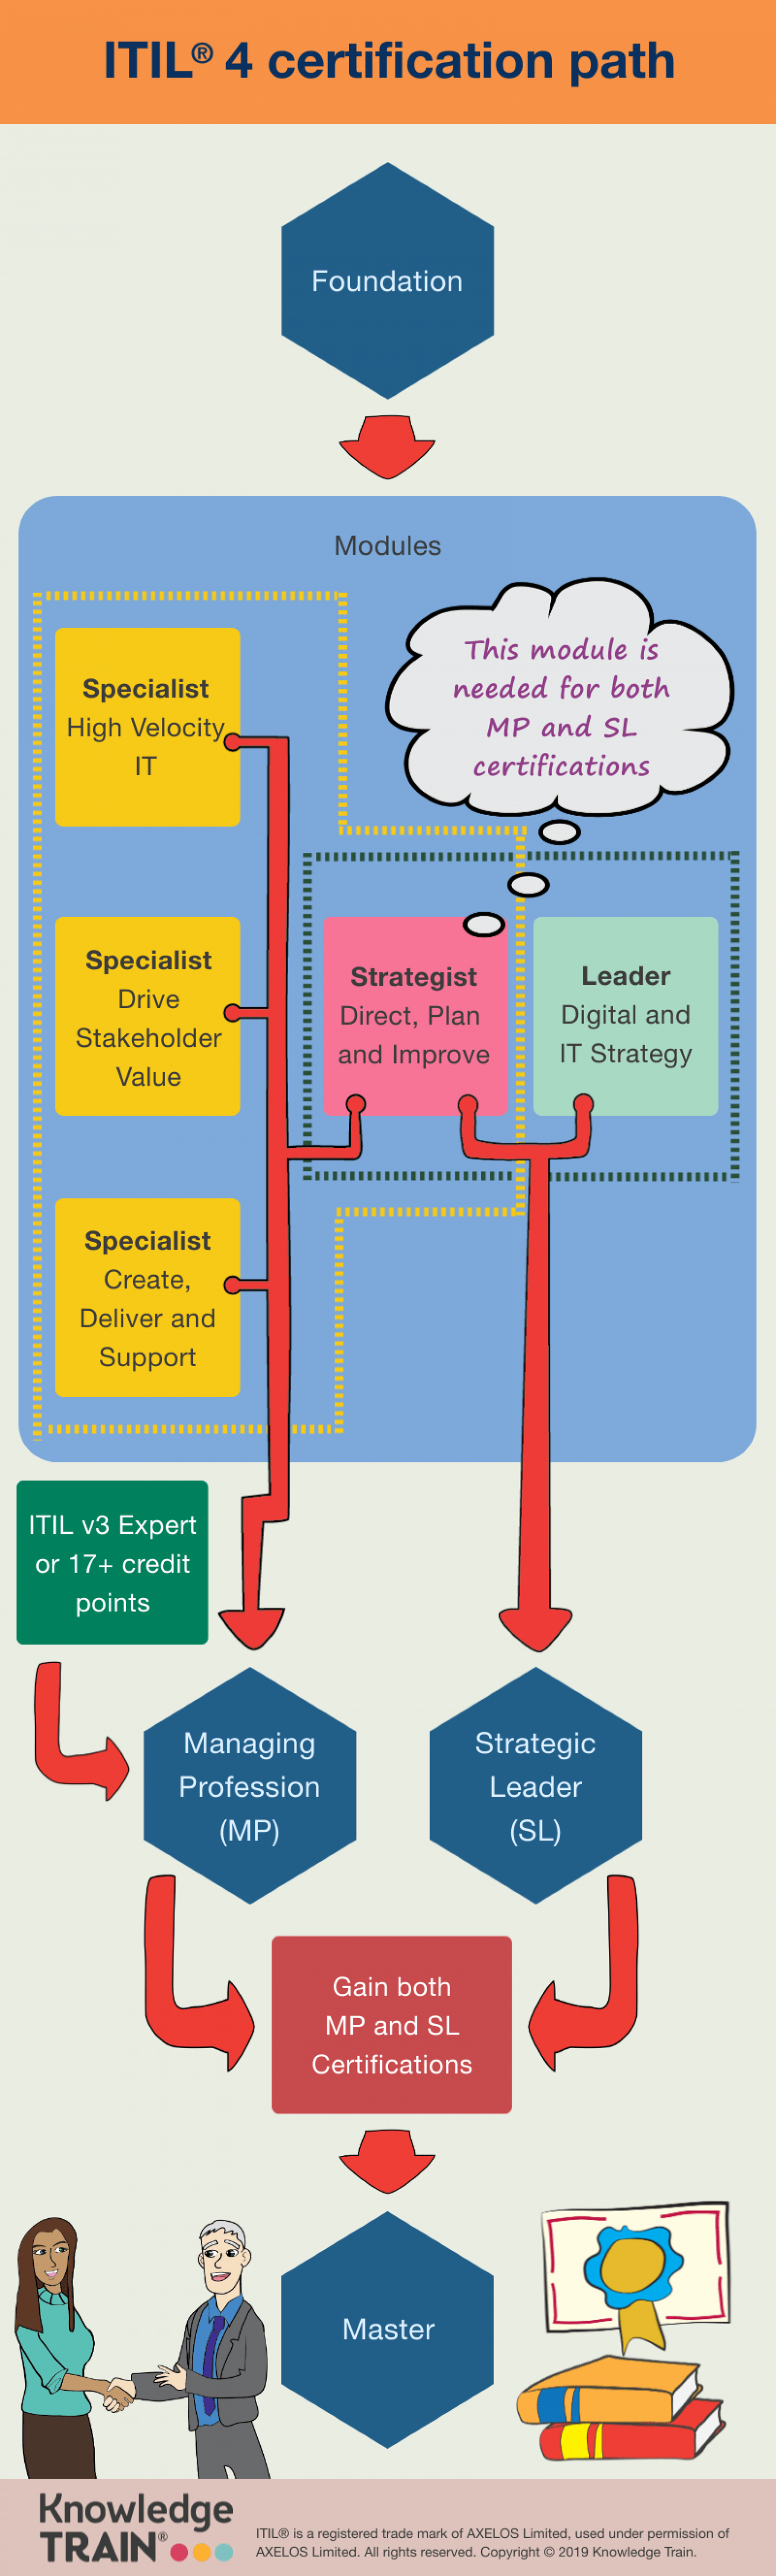 ITIL v4 Certification Path Infographic